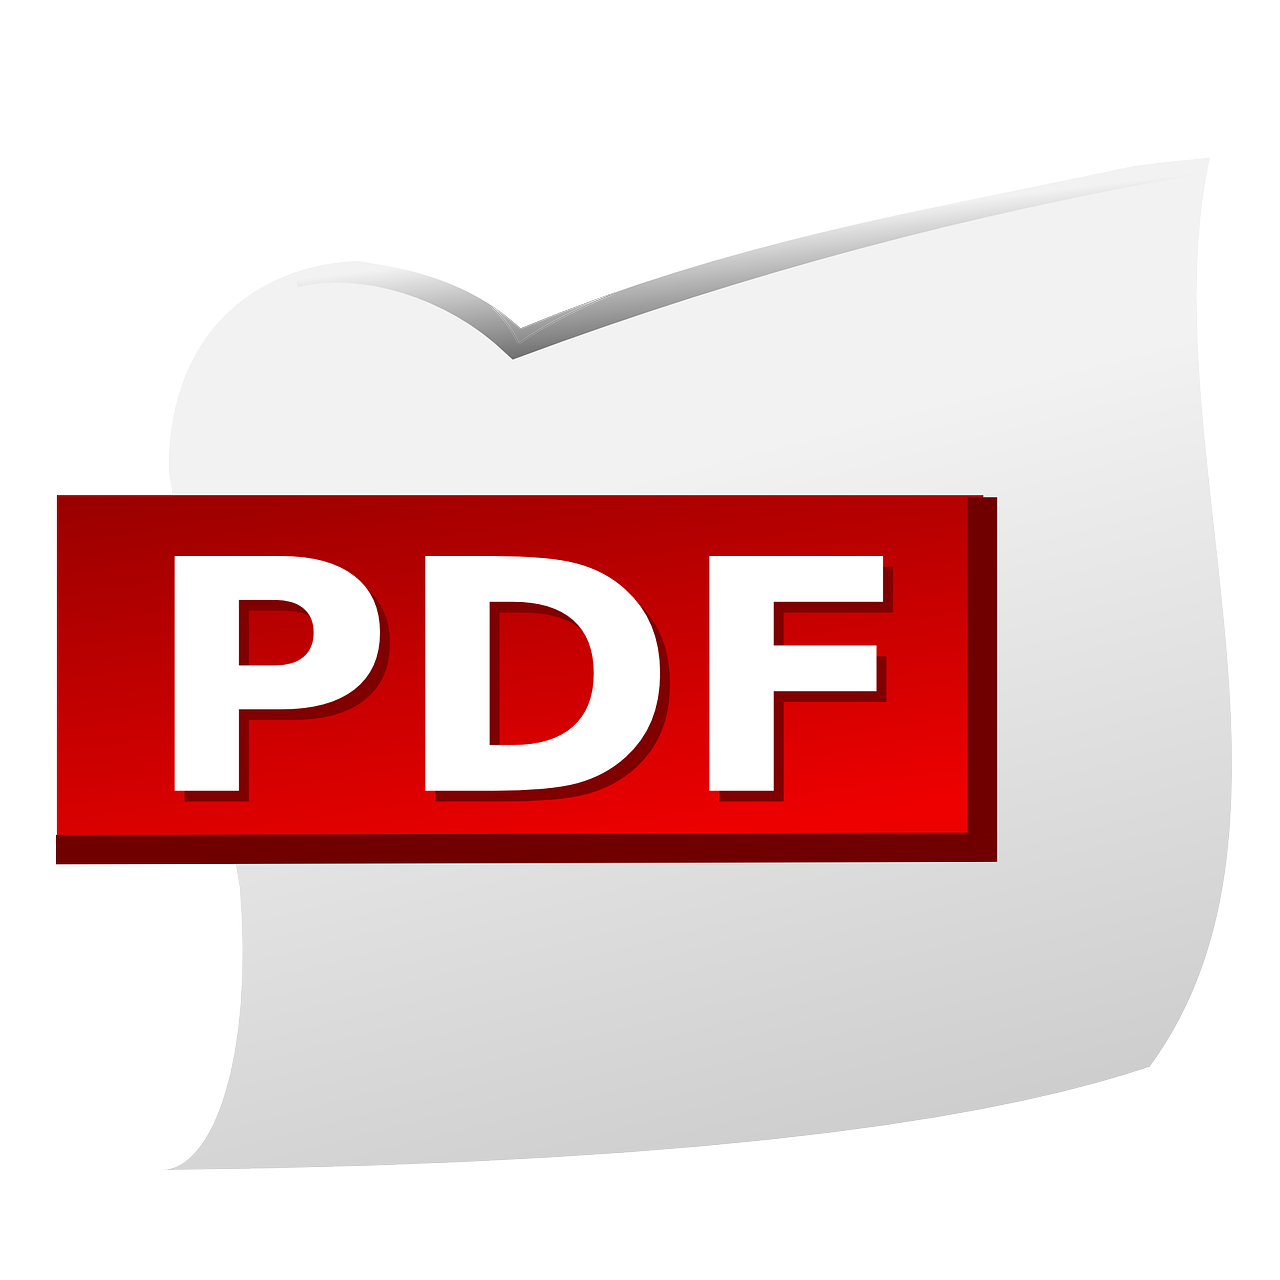 PDFBear Online: How To Use Some Of The Excellent Features Of This Third-Party Tool